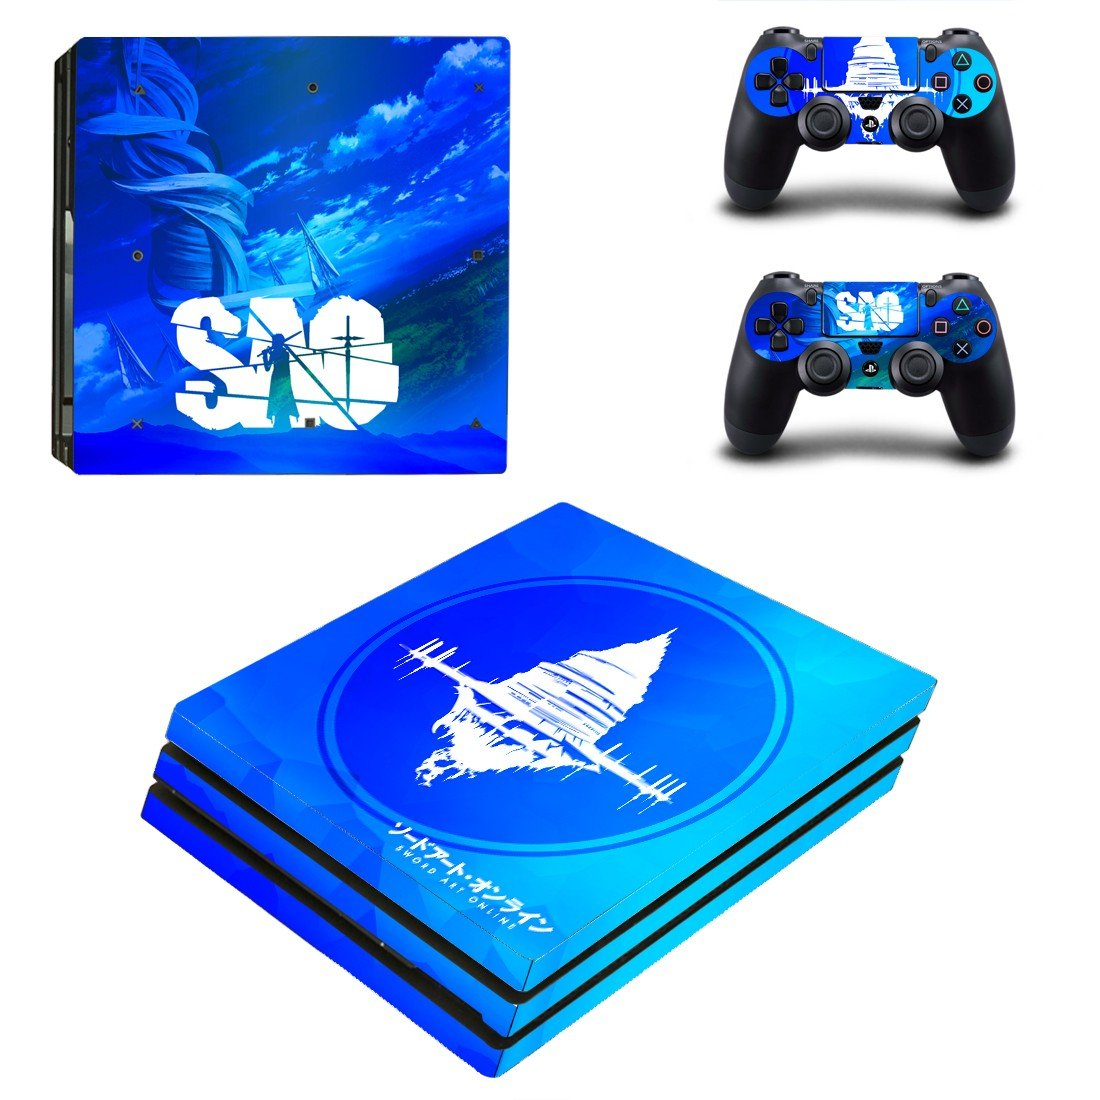 Sword art online  ps4 pro skin decal for console and controllers